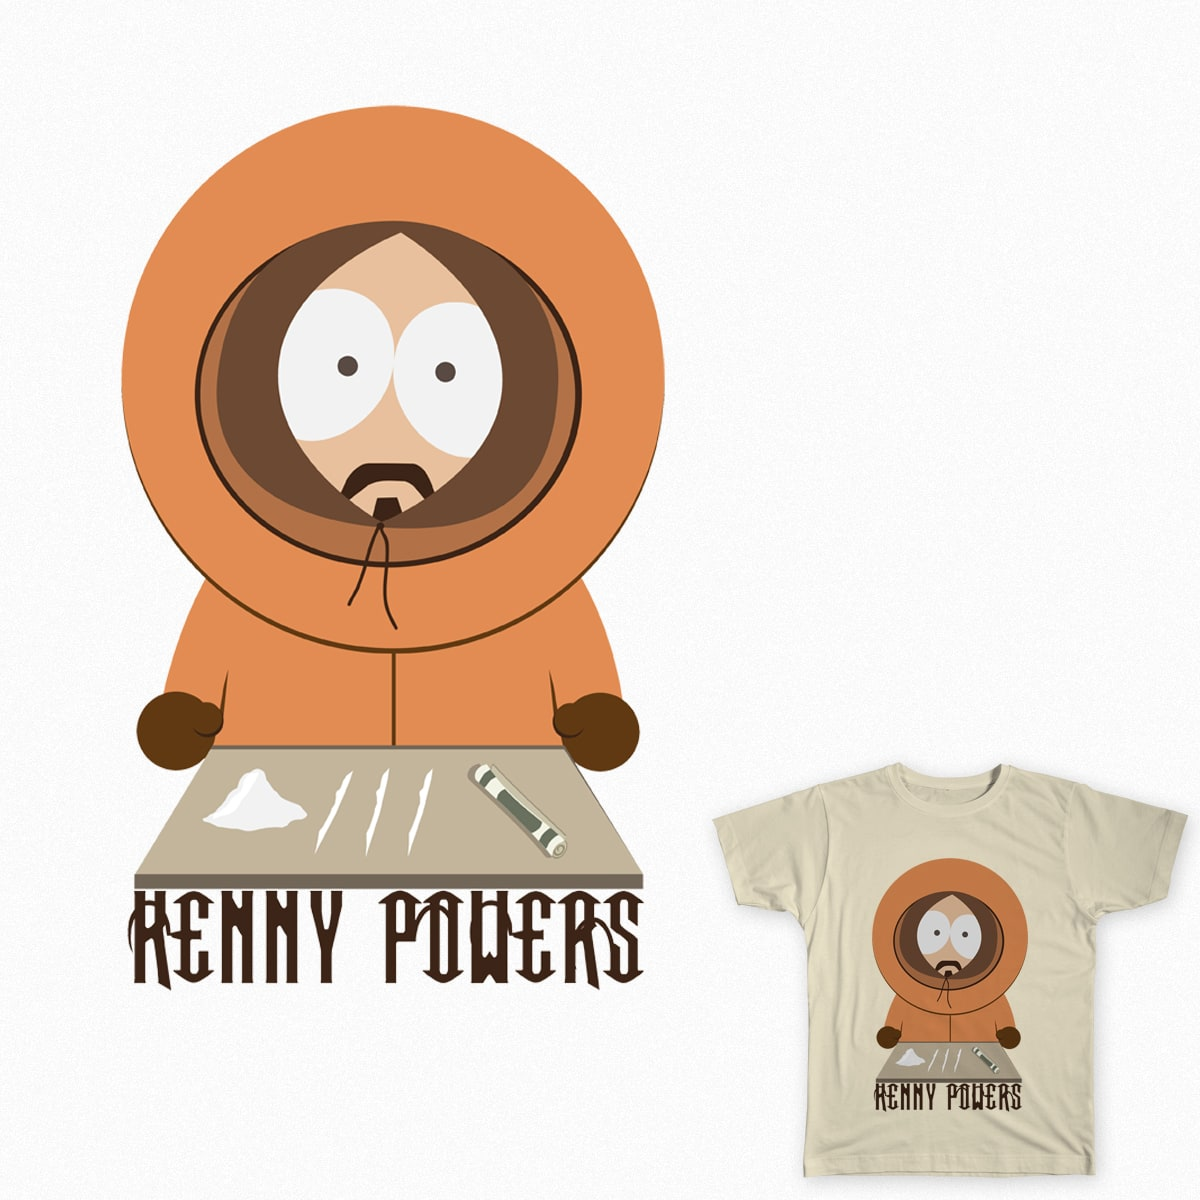 Kenny Powers by sohelpmegod on Threadless